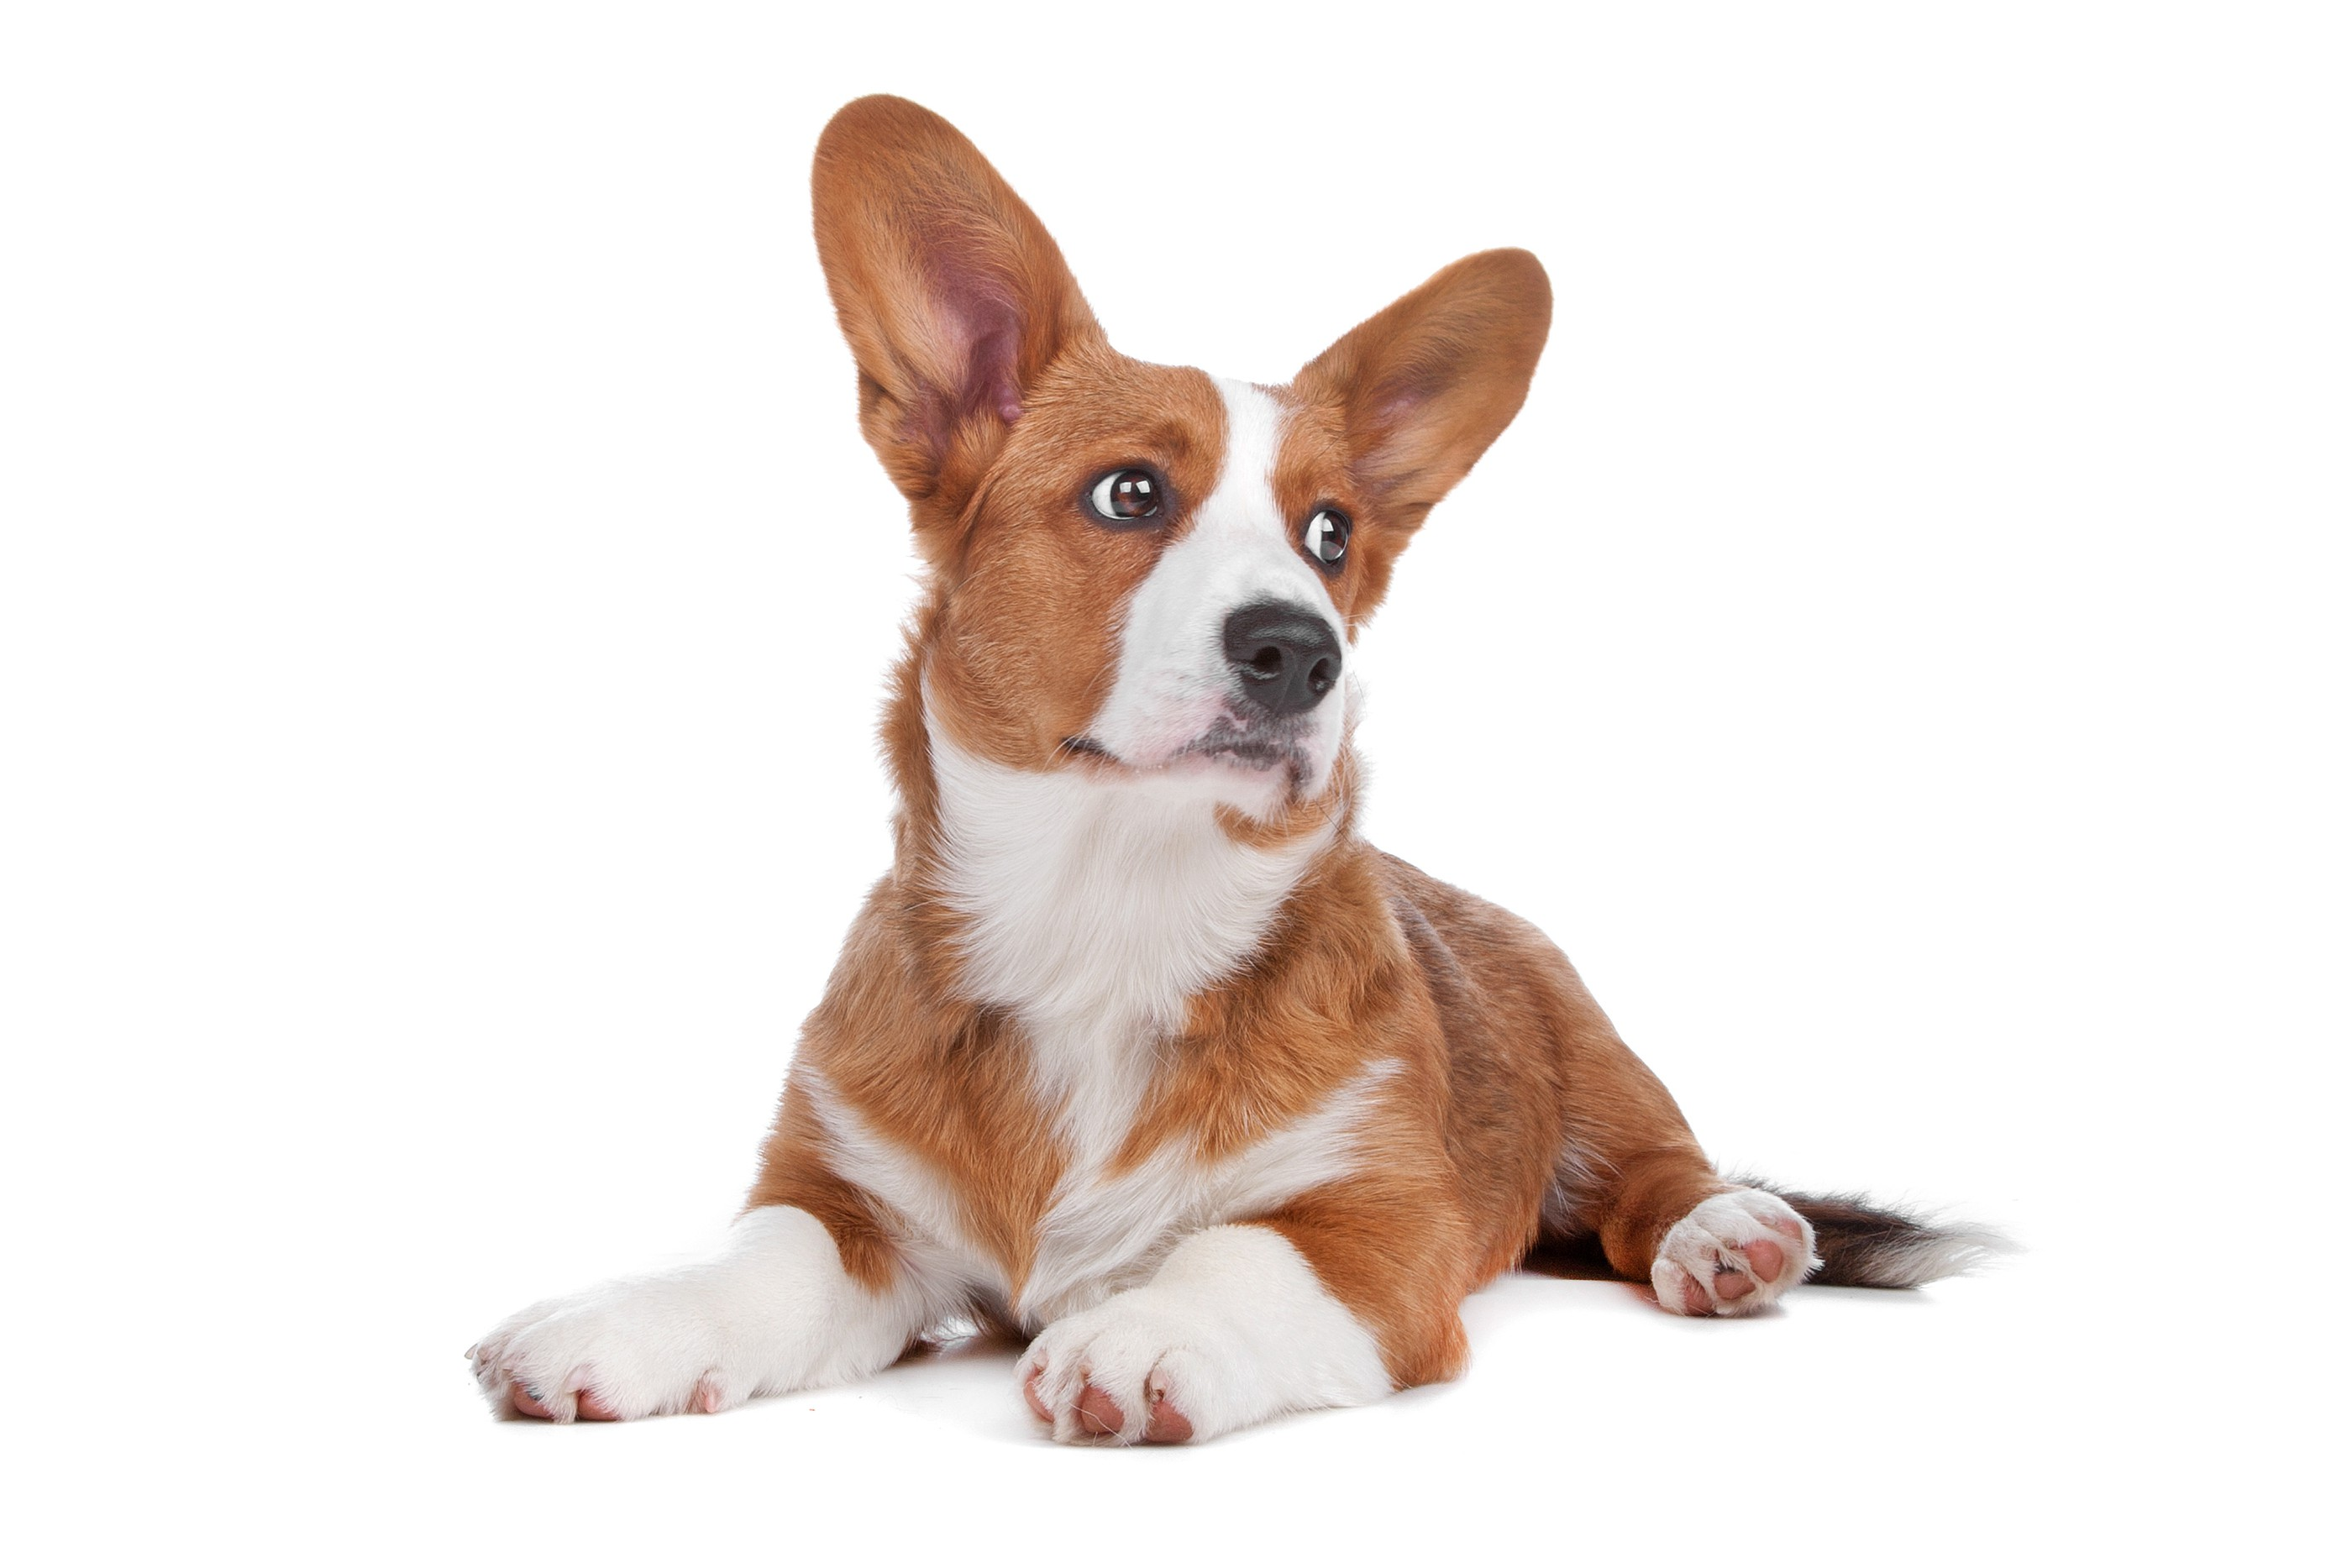 bigstock-welsh-corgi-dog-110298621.jpg